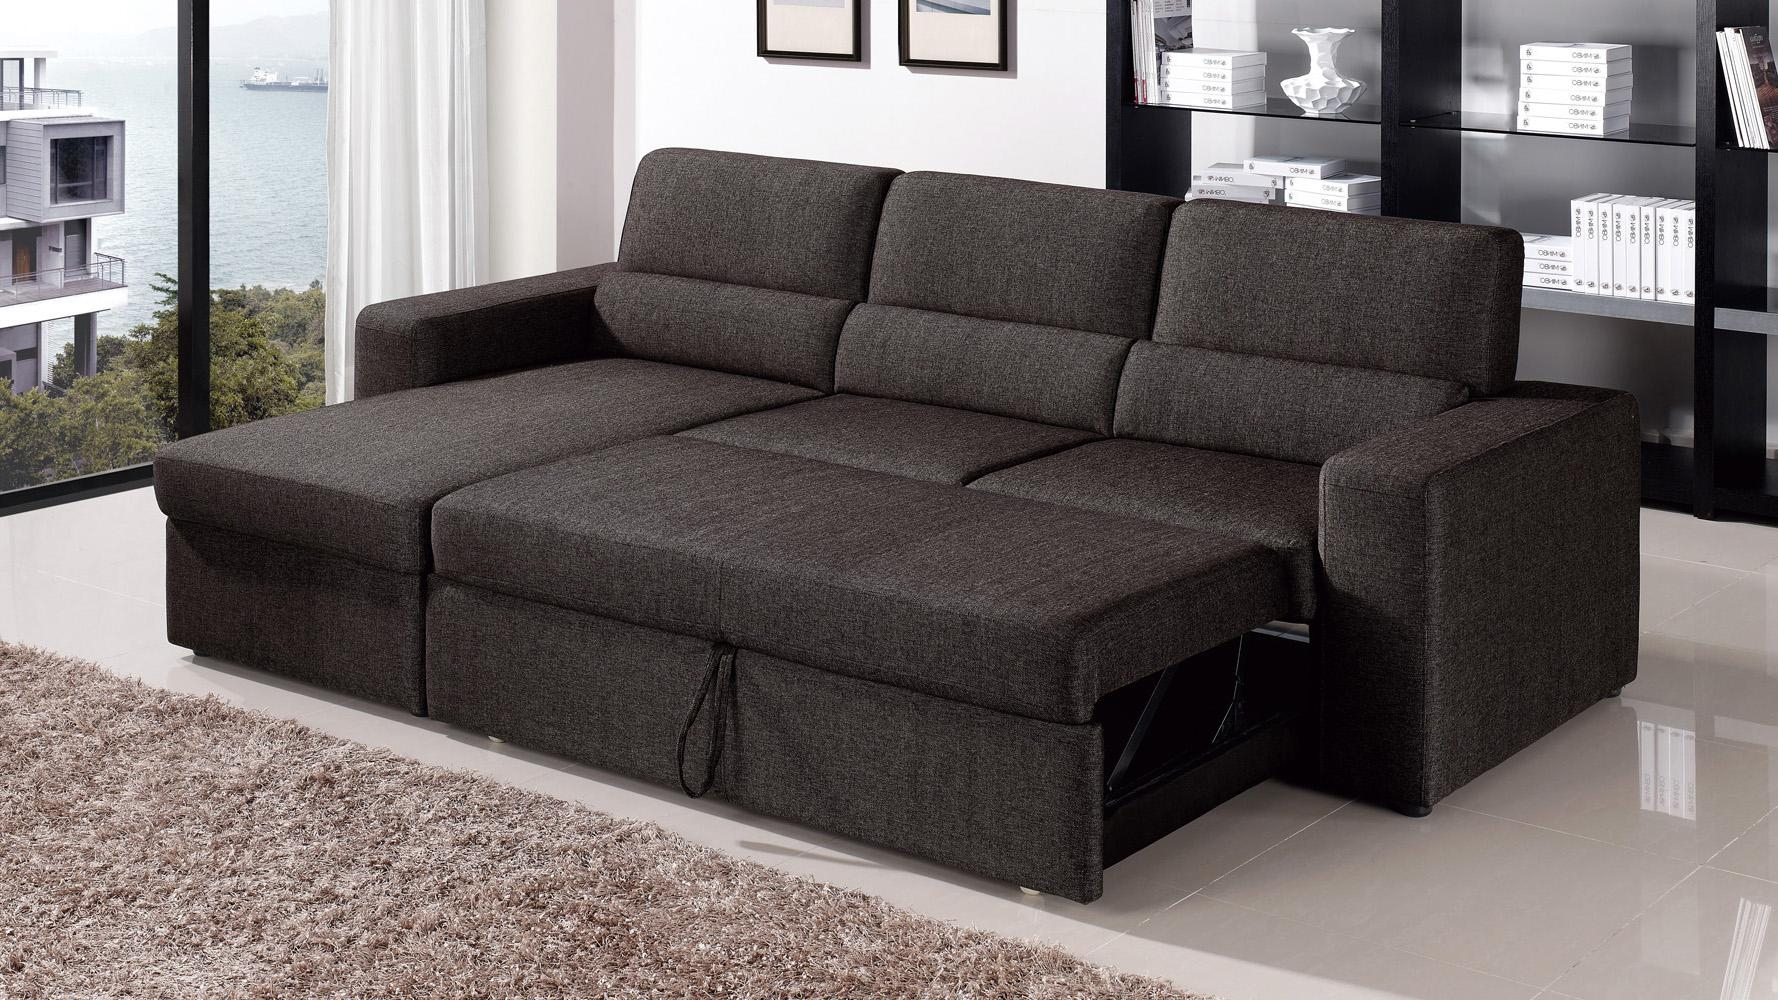 Black/brown Clubber Sleeper Sectional Sofa | Zuri Furniture With Regard To Sleeper Sectional Sofas (Image 3 of 20)